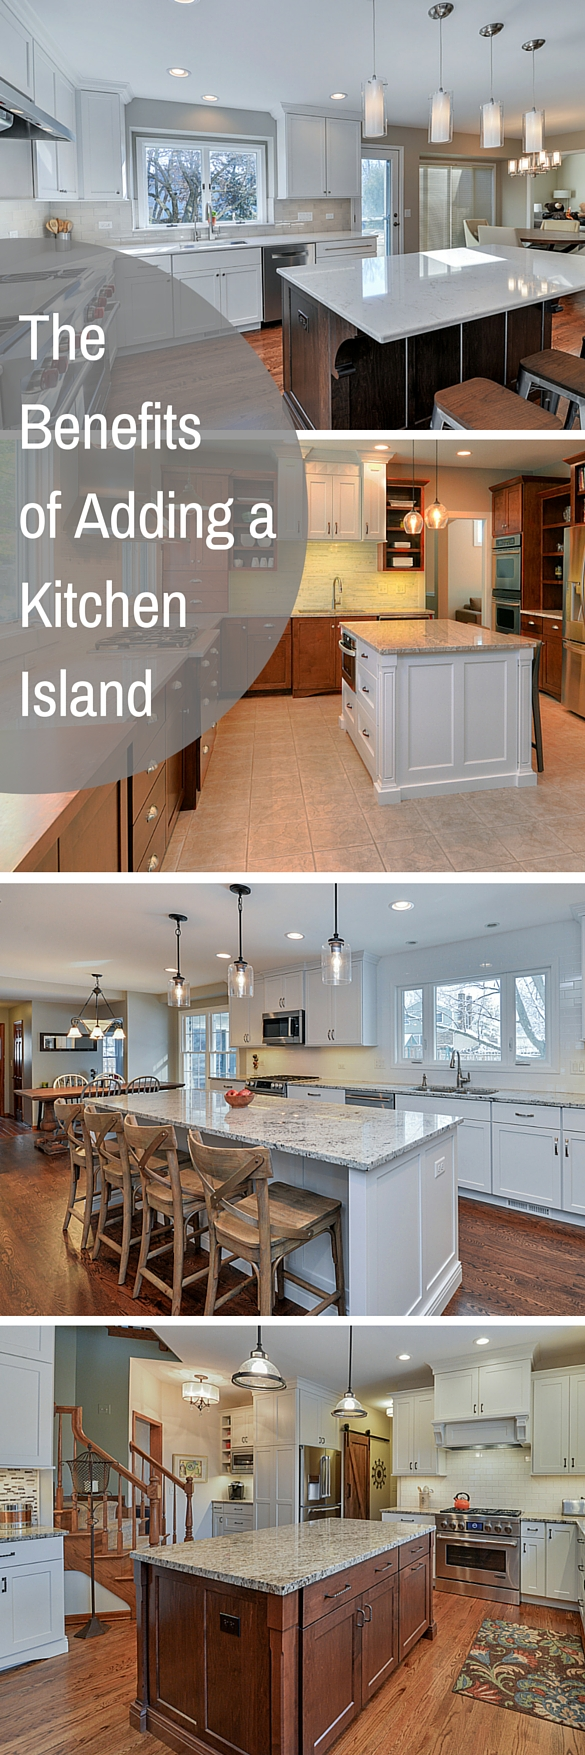 benefits of adding a kitchen island sebring services additional storage the benefits of adding an island to your kitchen   home remodeling      rh   sebringdesignbuild com